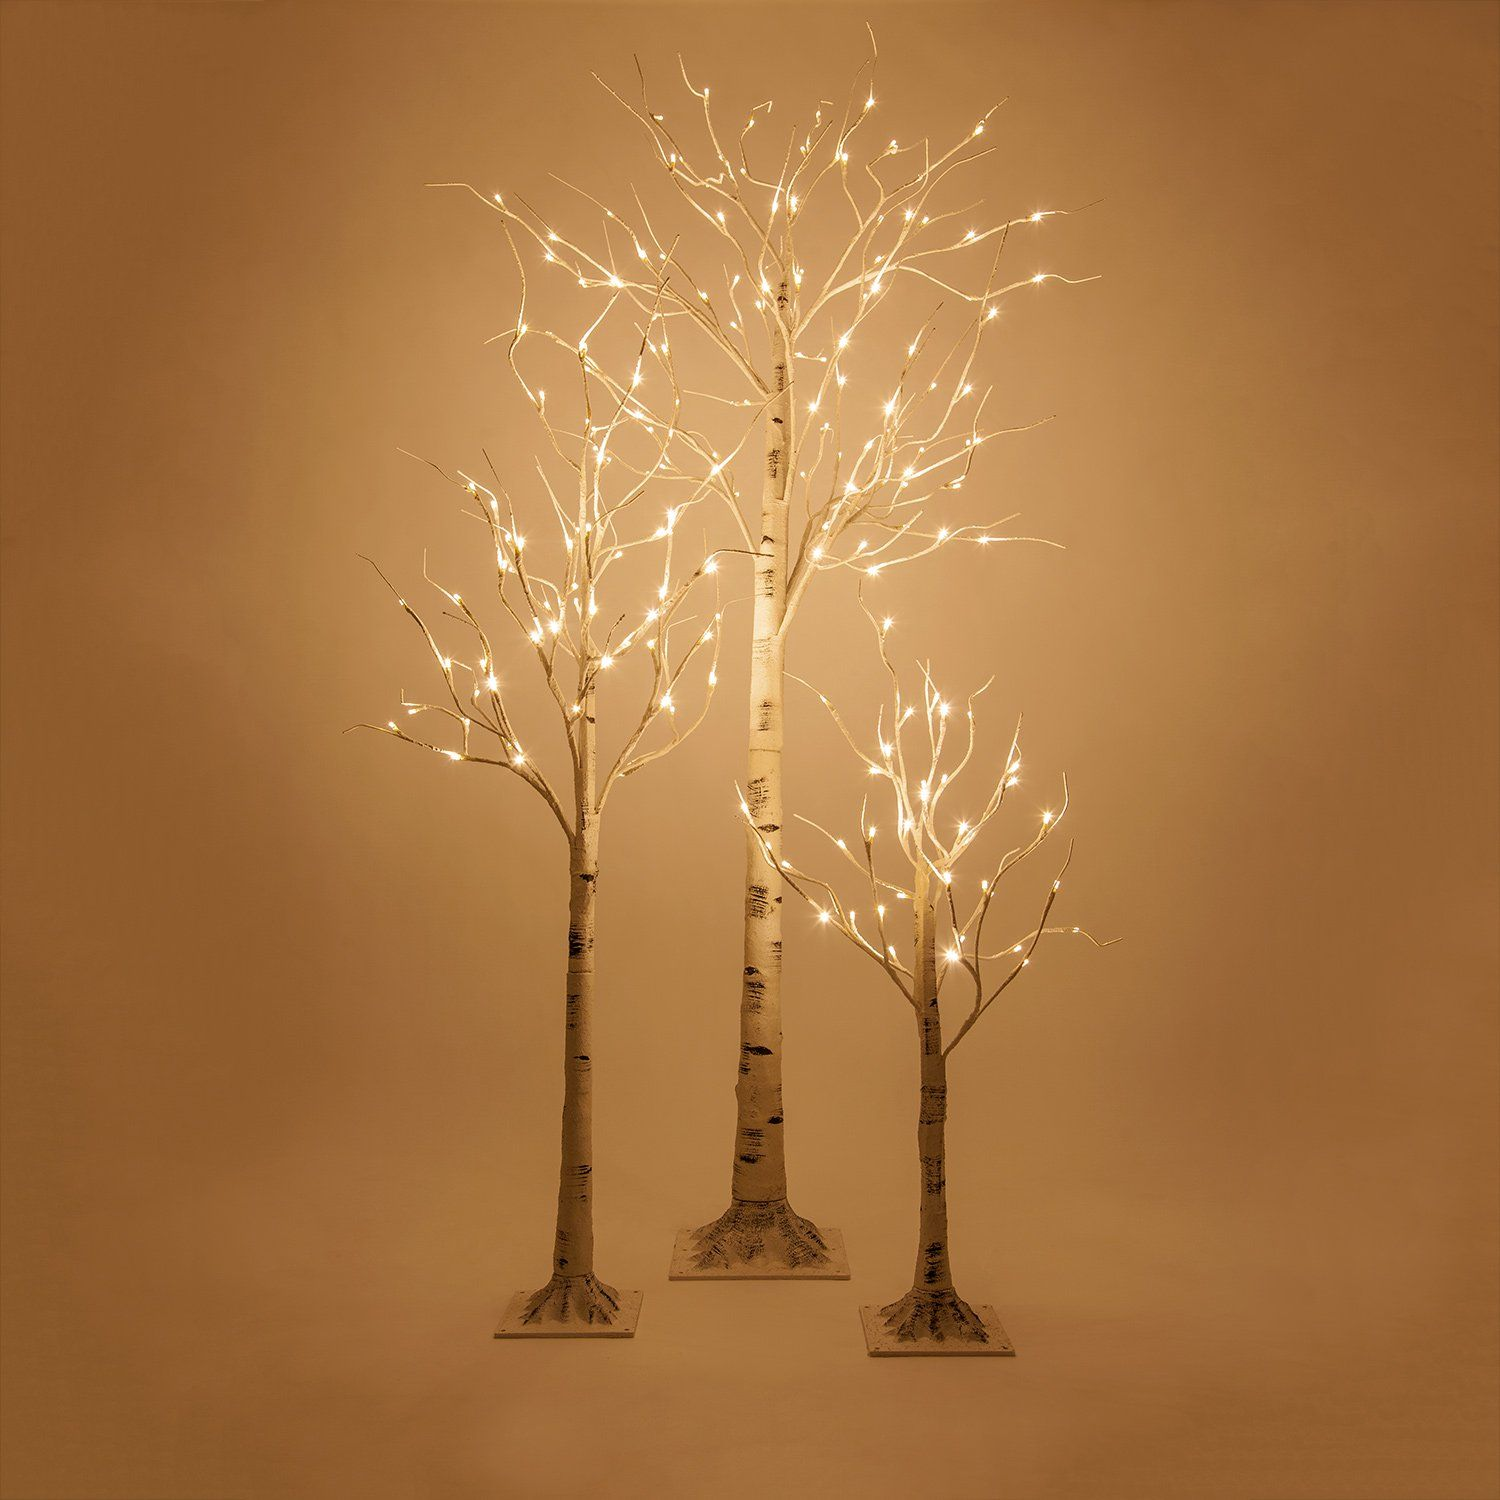 5 Ft LED White Birch Twig Tree Light, 60 Warm White LED